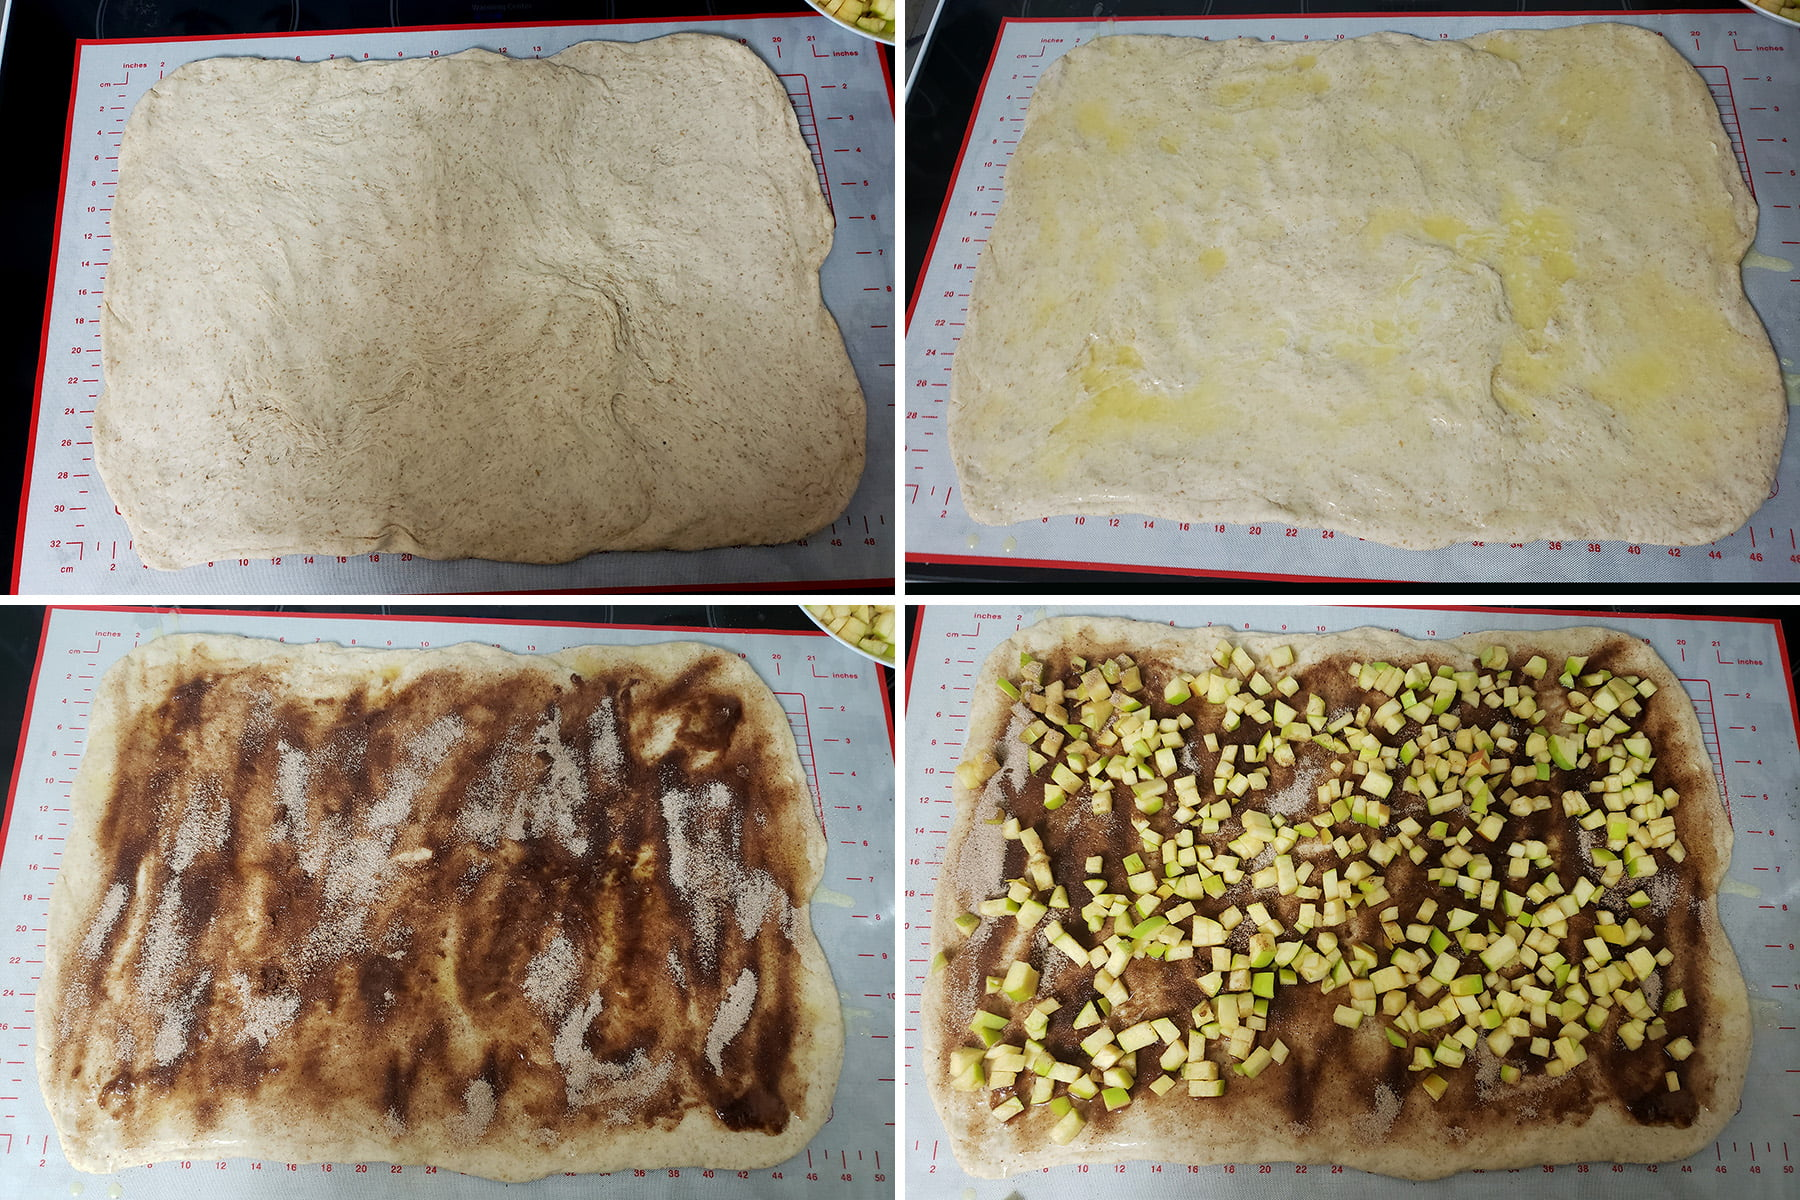 A progression showing the dressing up of the rolled dough: Rolled out, butter spread on, spiced sugar mix sprinkled over it, and finally chopped apples arranged all over it.